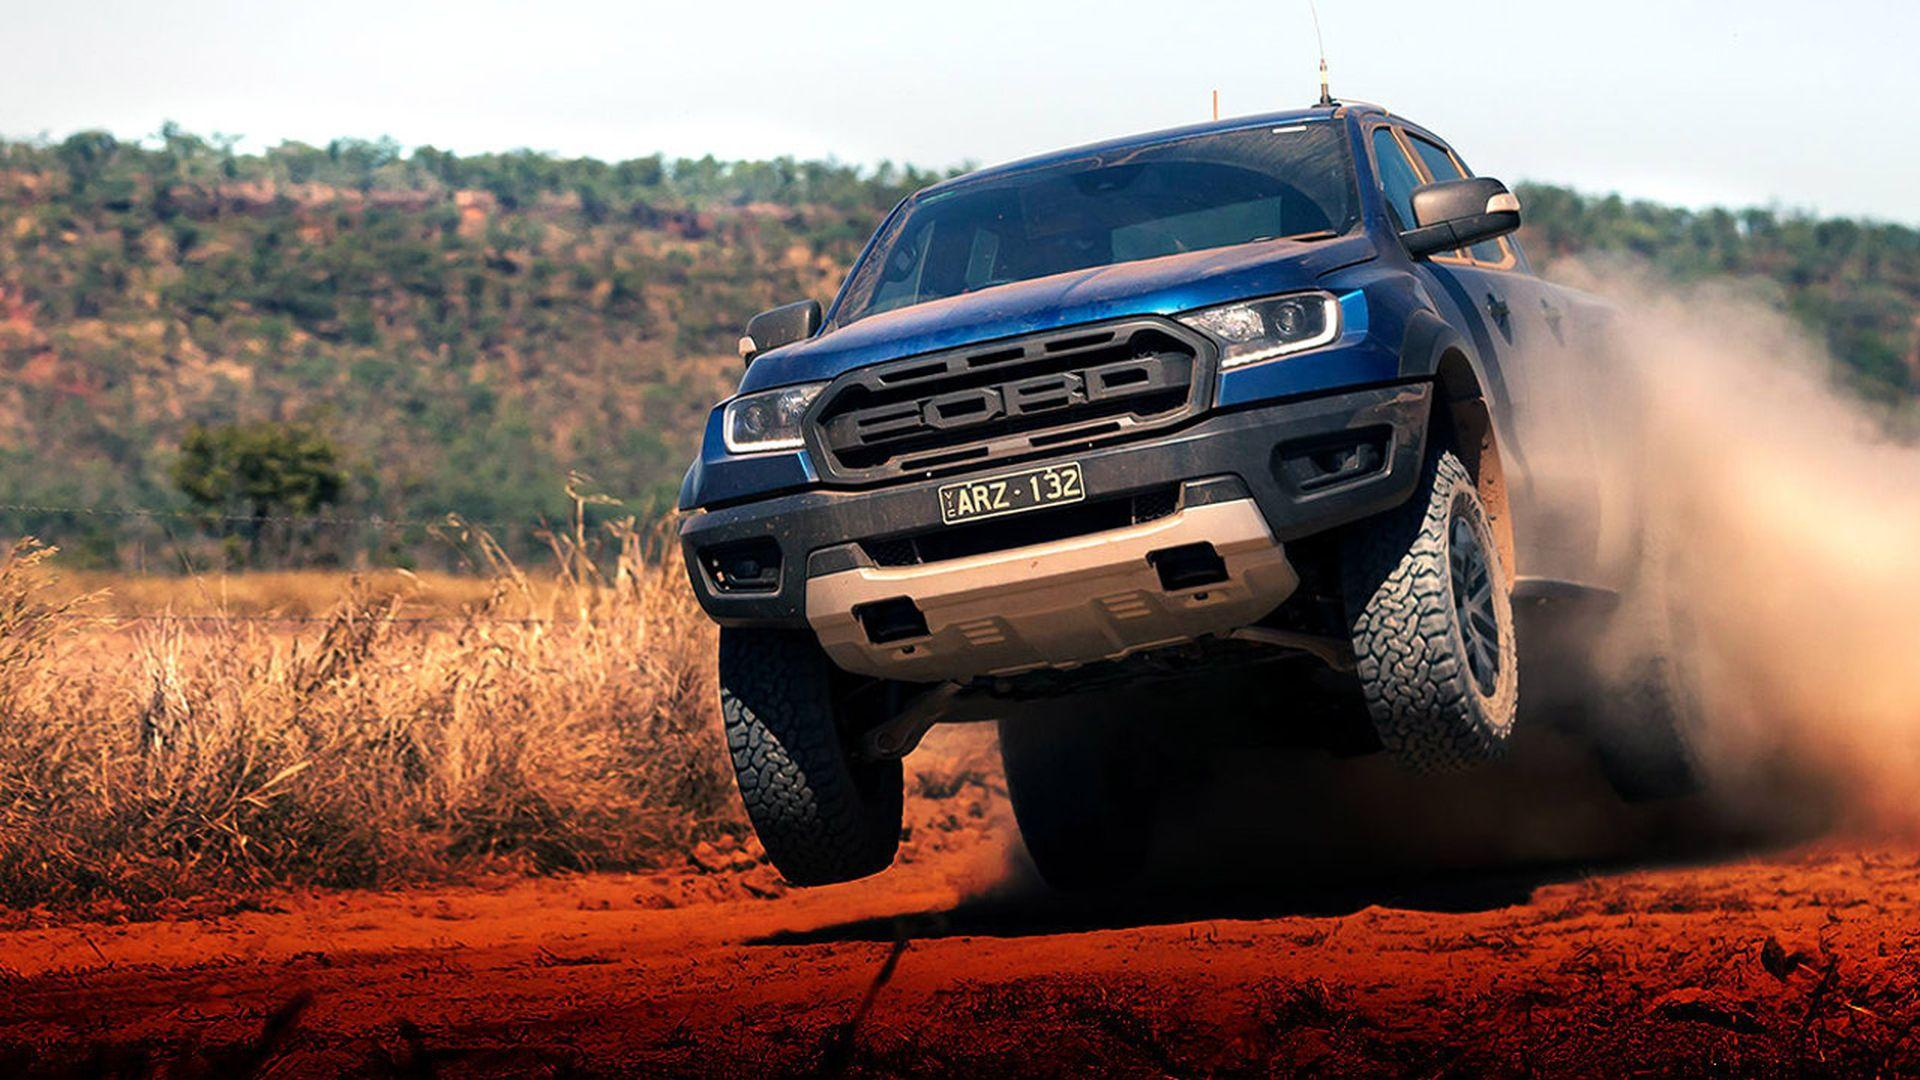 2019 Ford Ranger Raptor review: CarAdvice 2018, Short Video